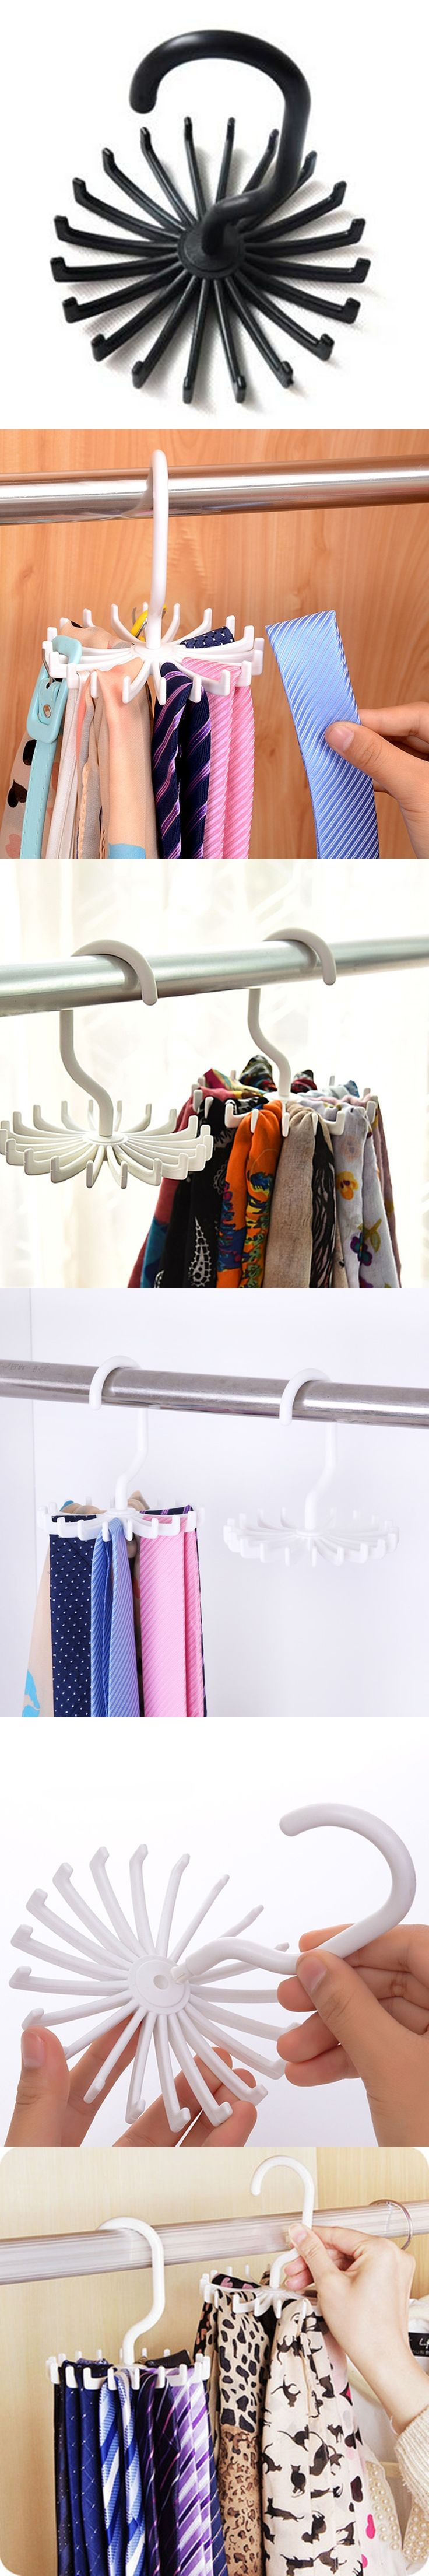 Creative Rotating Adjustable Tie Hanger Holds with 20 Neck Towel hat Organizer hook Hang shelf Plastic Rack